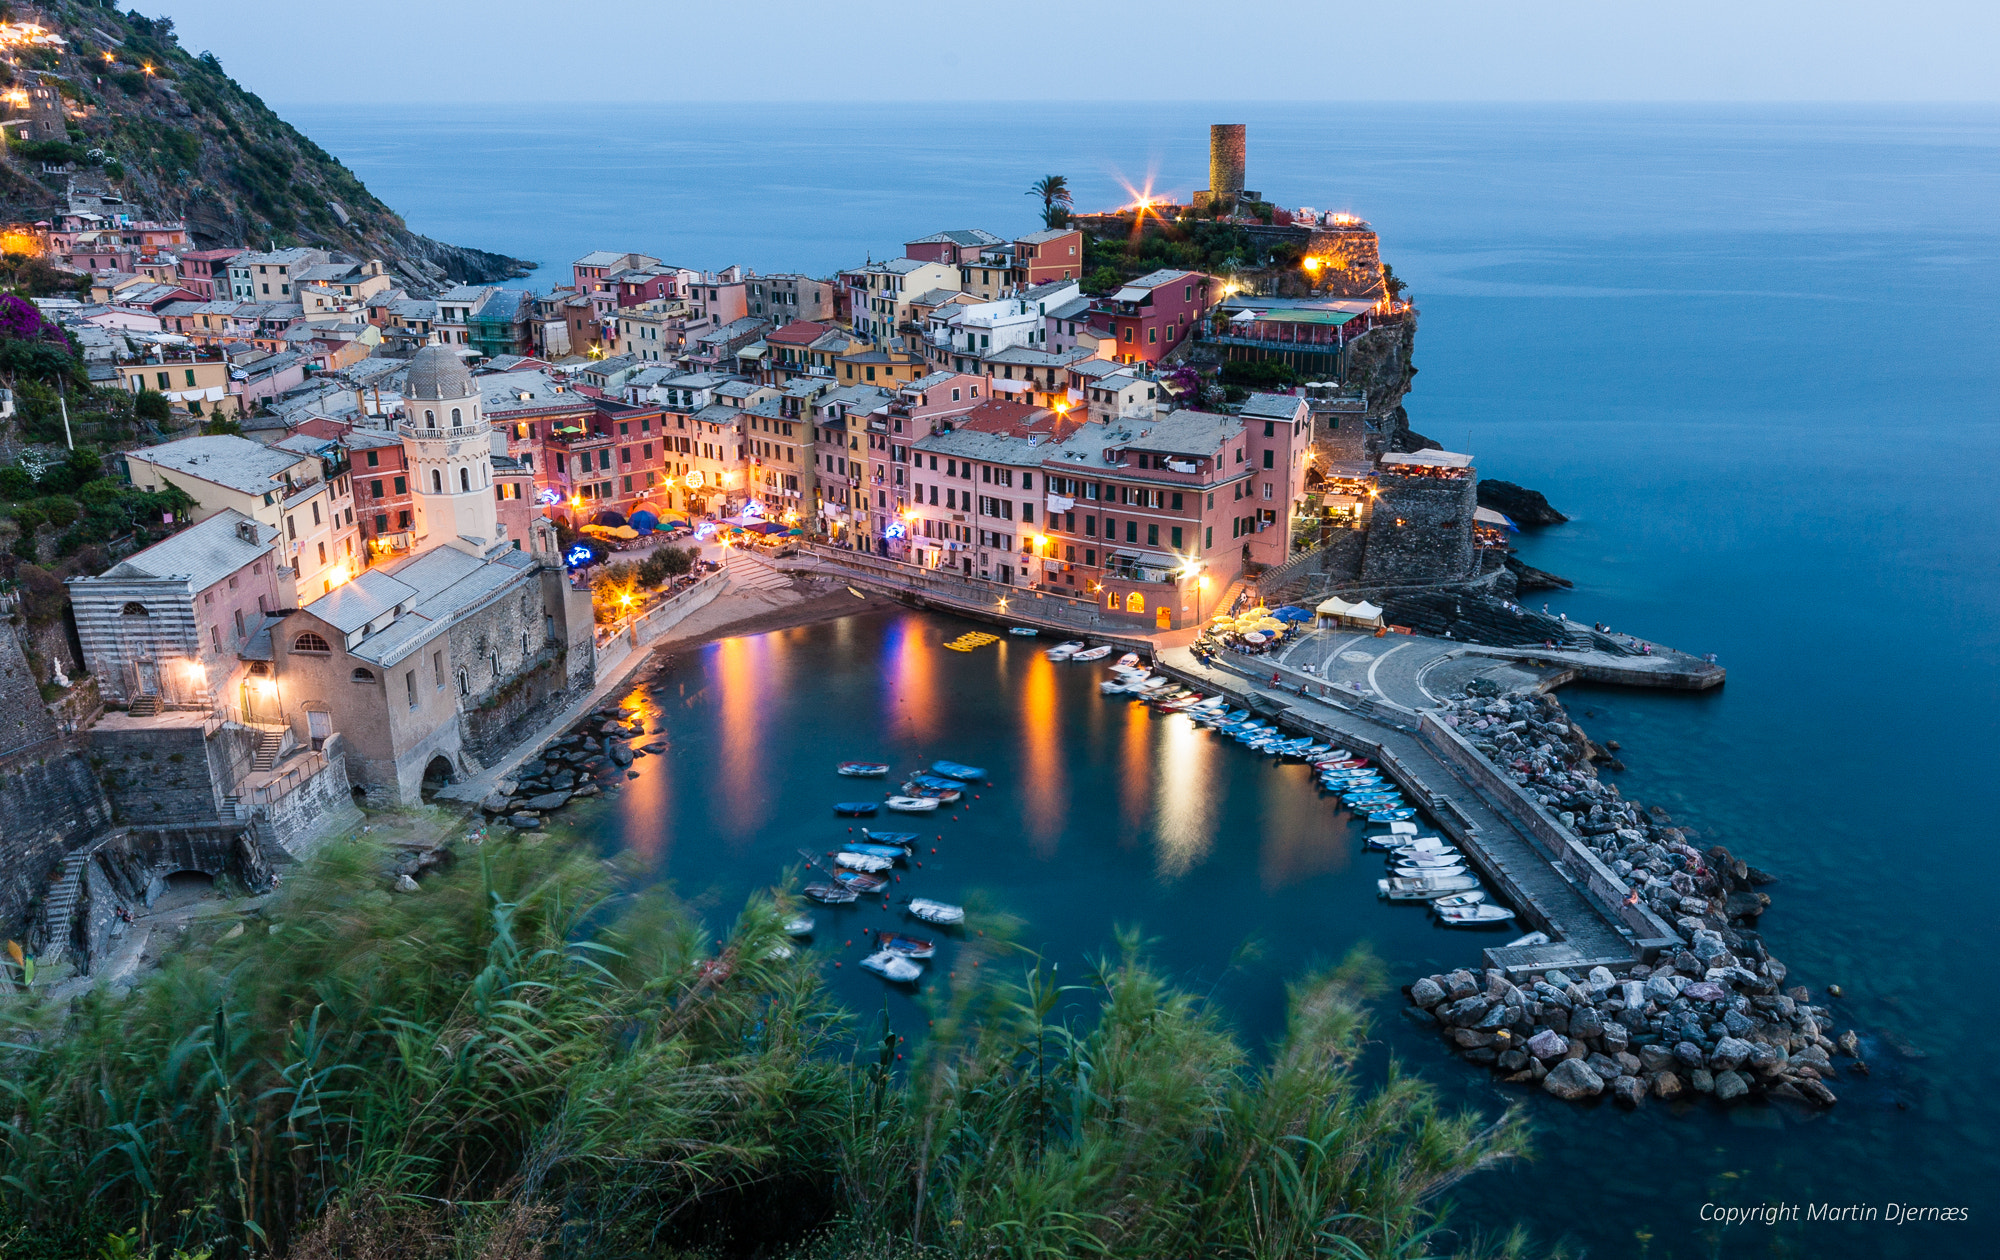 Photograph Vernazza, Italy by Martin Djernaes on 500px